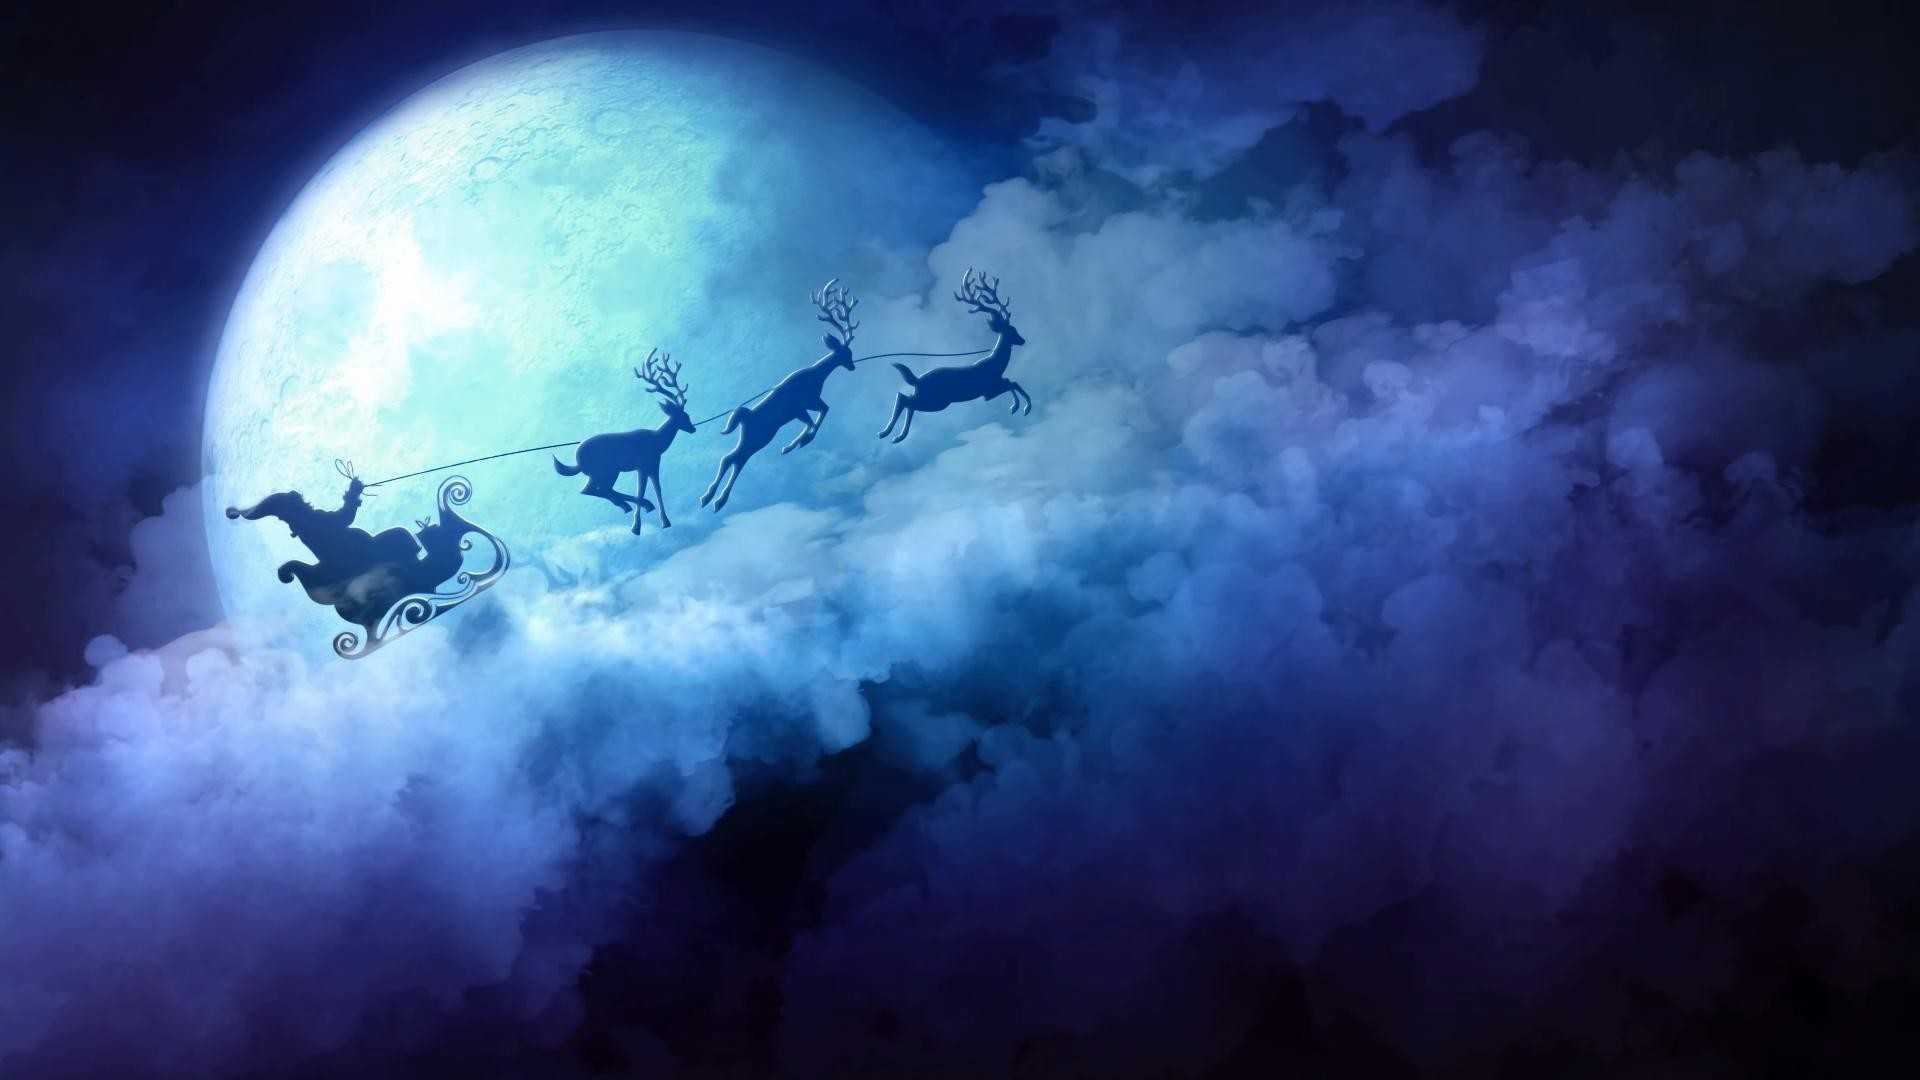 download-christmas-wallpapers-with-quotes greetings